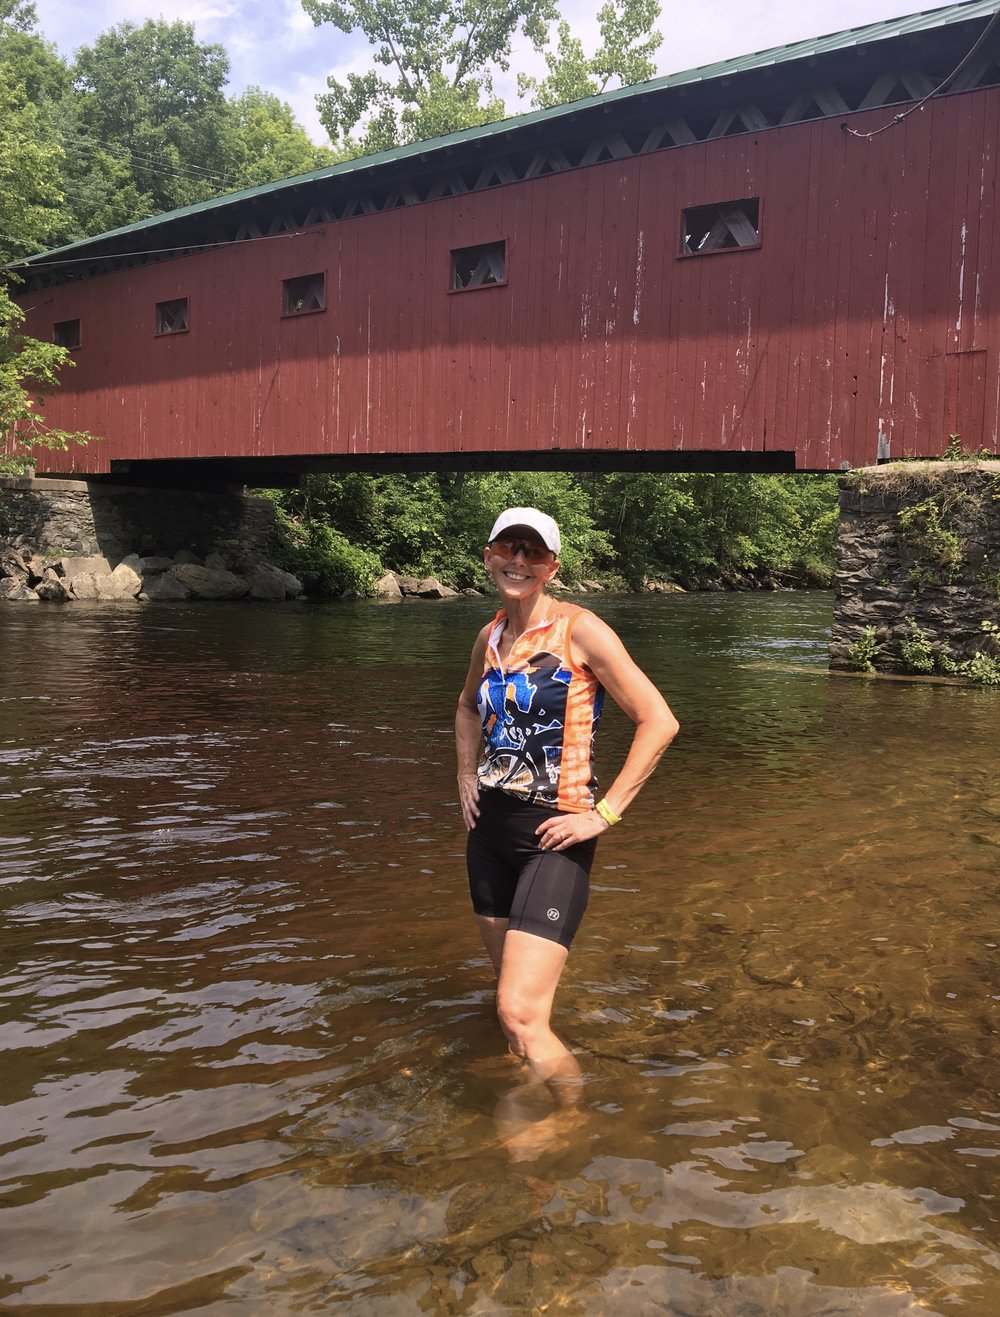 Cooling off in the Battenkill River alongside the Arlington Green Covered Bridge